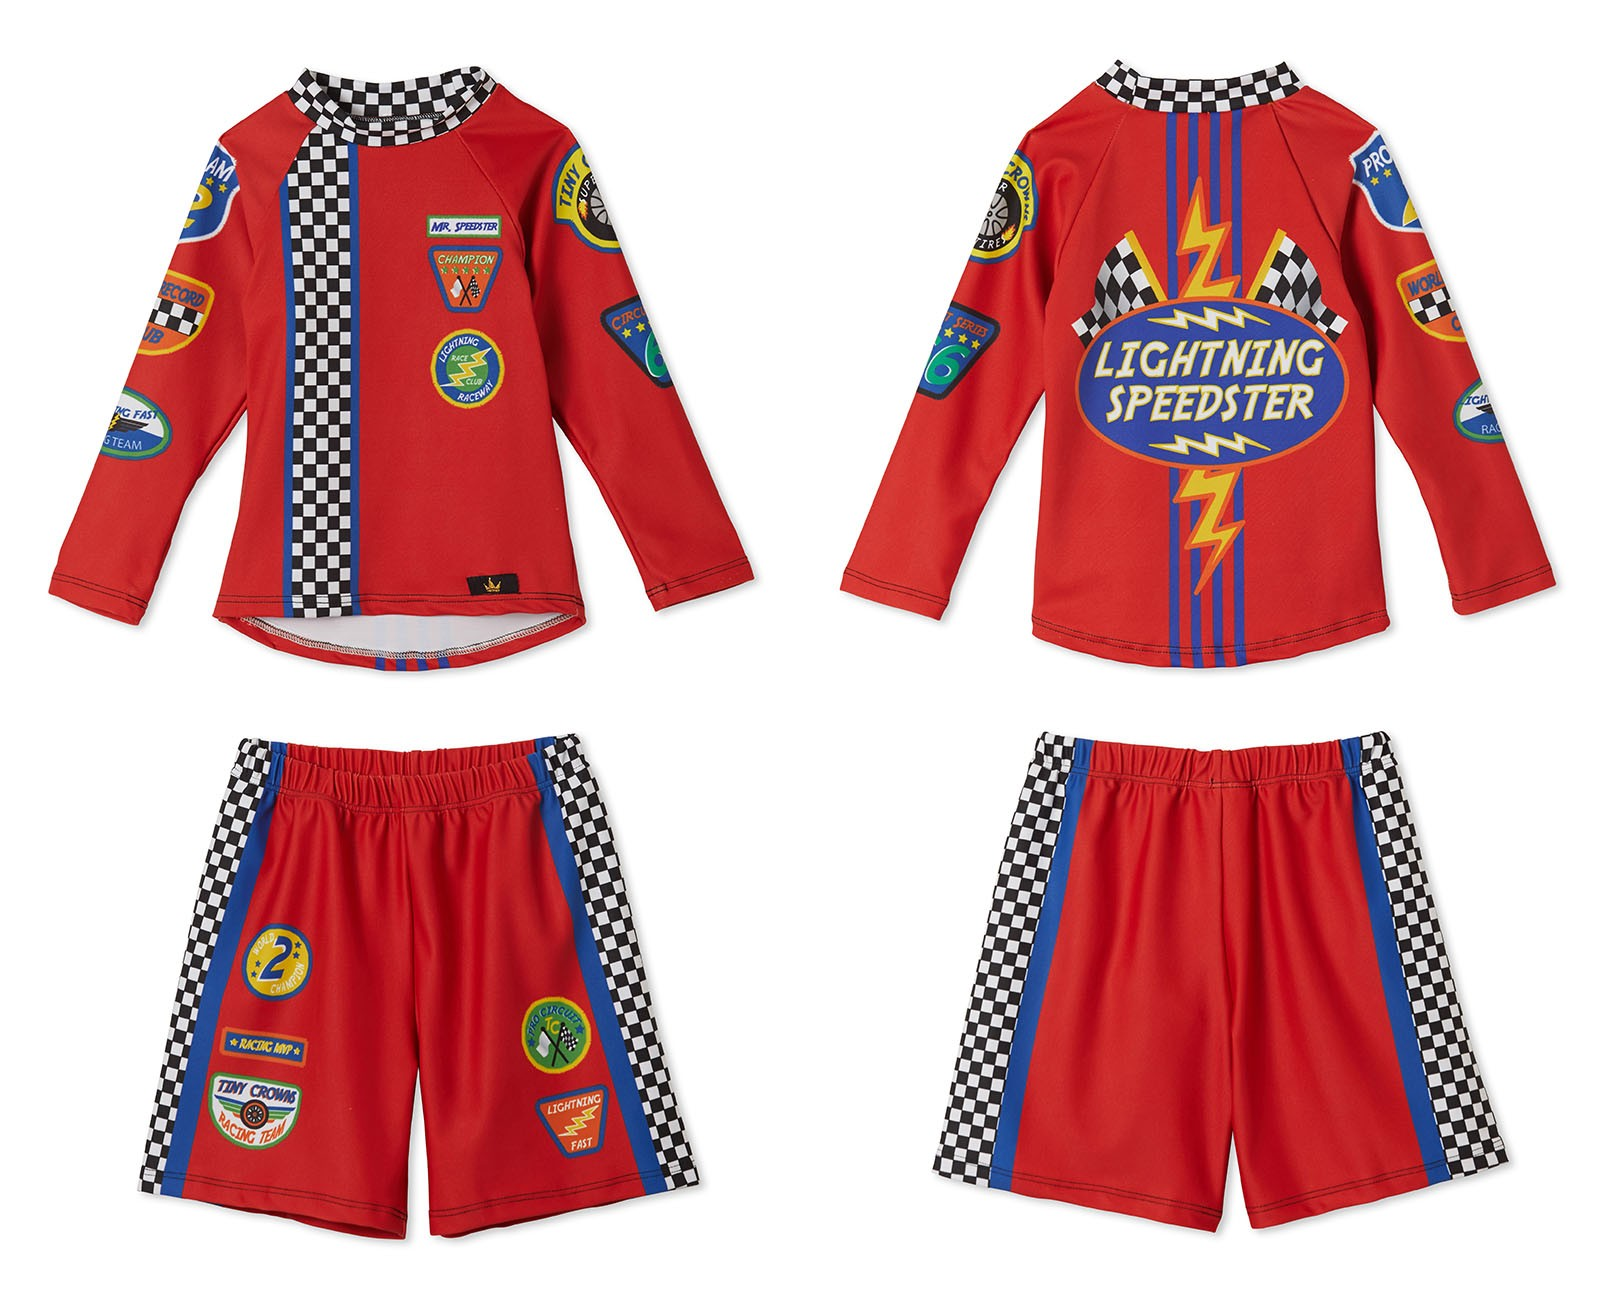 Product-Fashion-Clothing-Photography-Kids-Baby-Child-Children